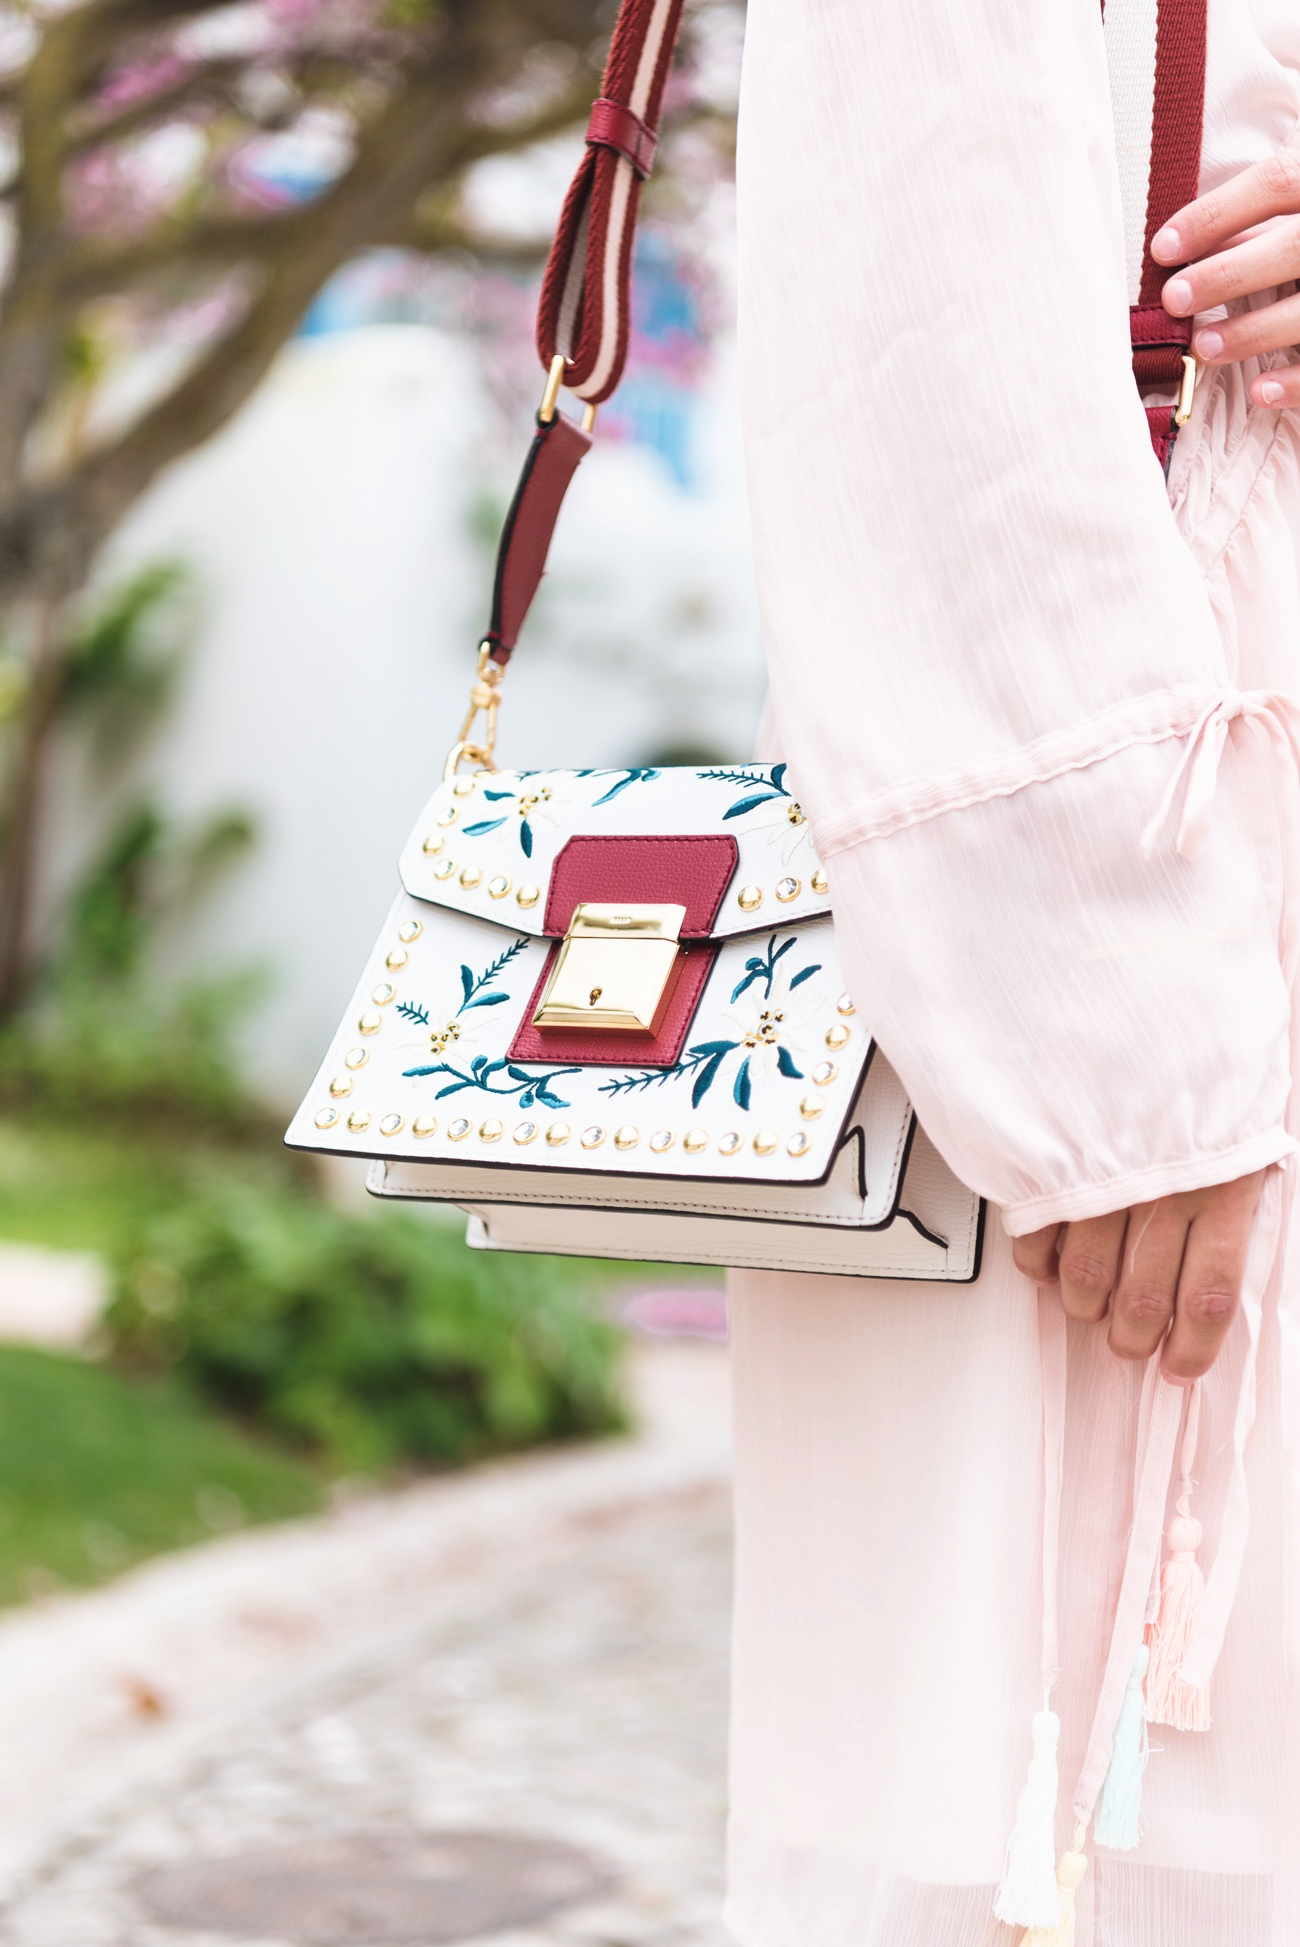 bally-Grimoire-Bag-white-red-ss-2017-collection-blogger-style-fashiioncarpet